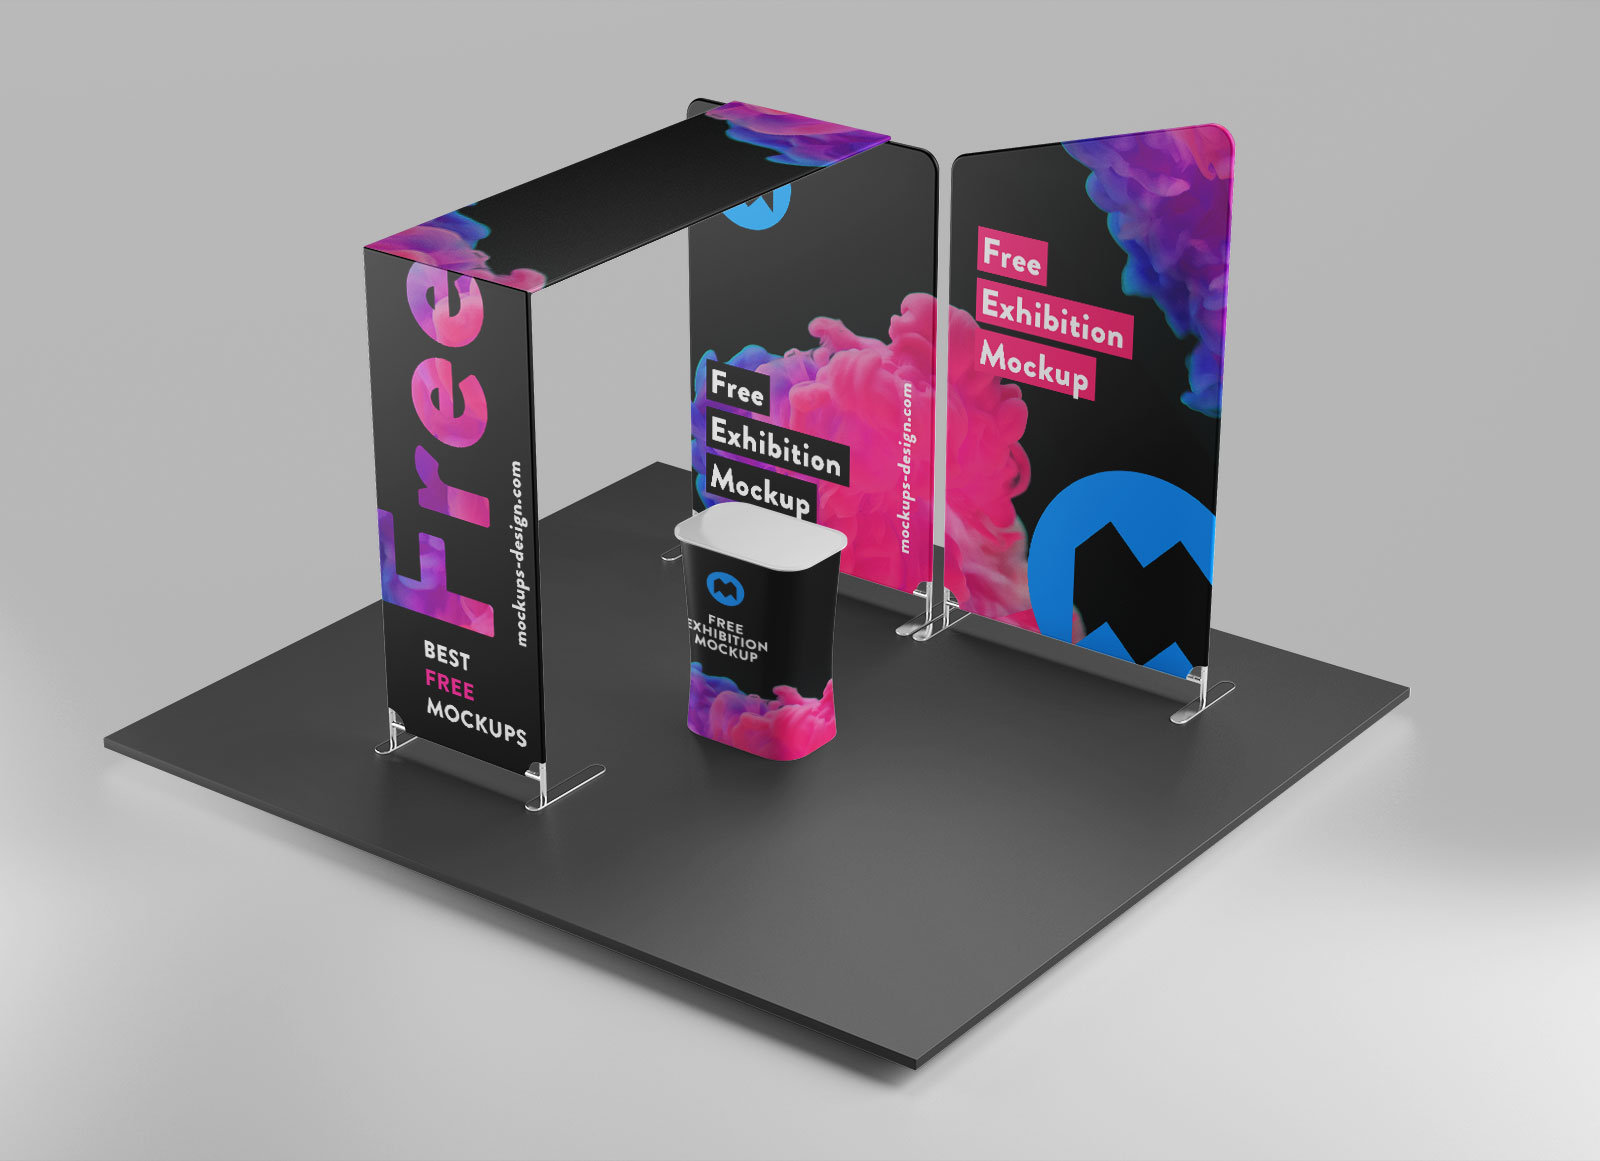 Simple Exhibition Stand Mockup : Free trade show exhibition display stand mockup psd set